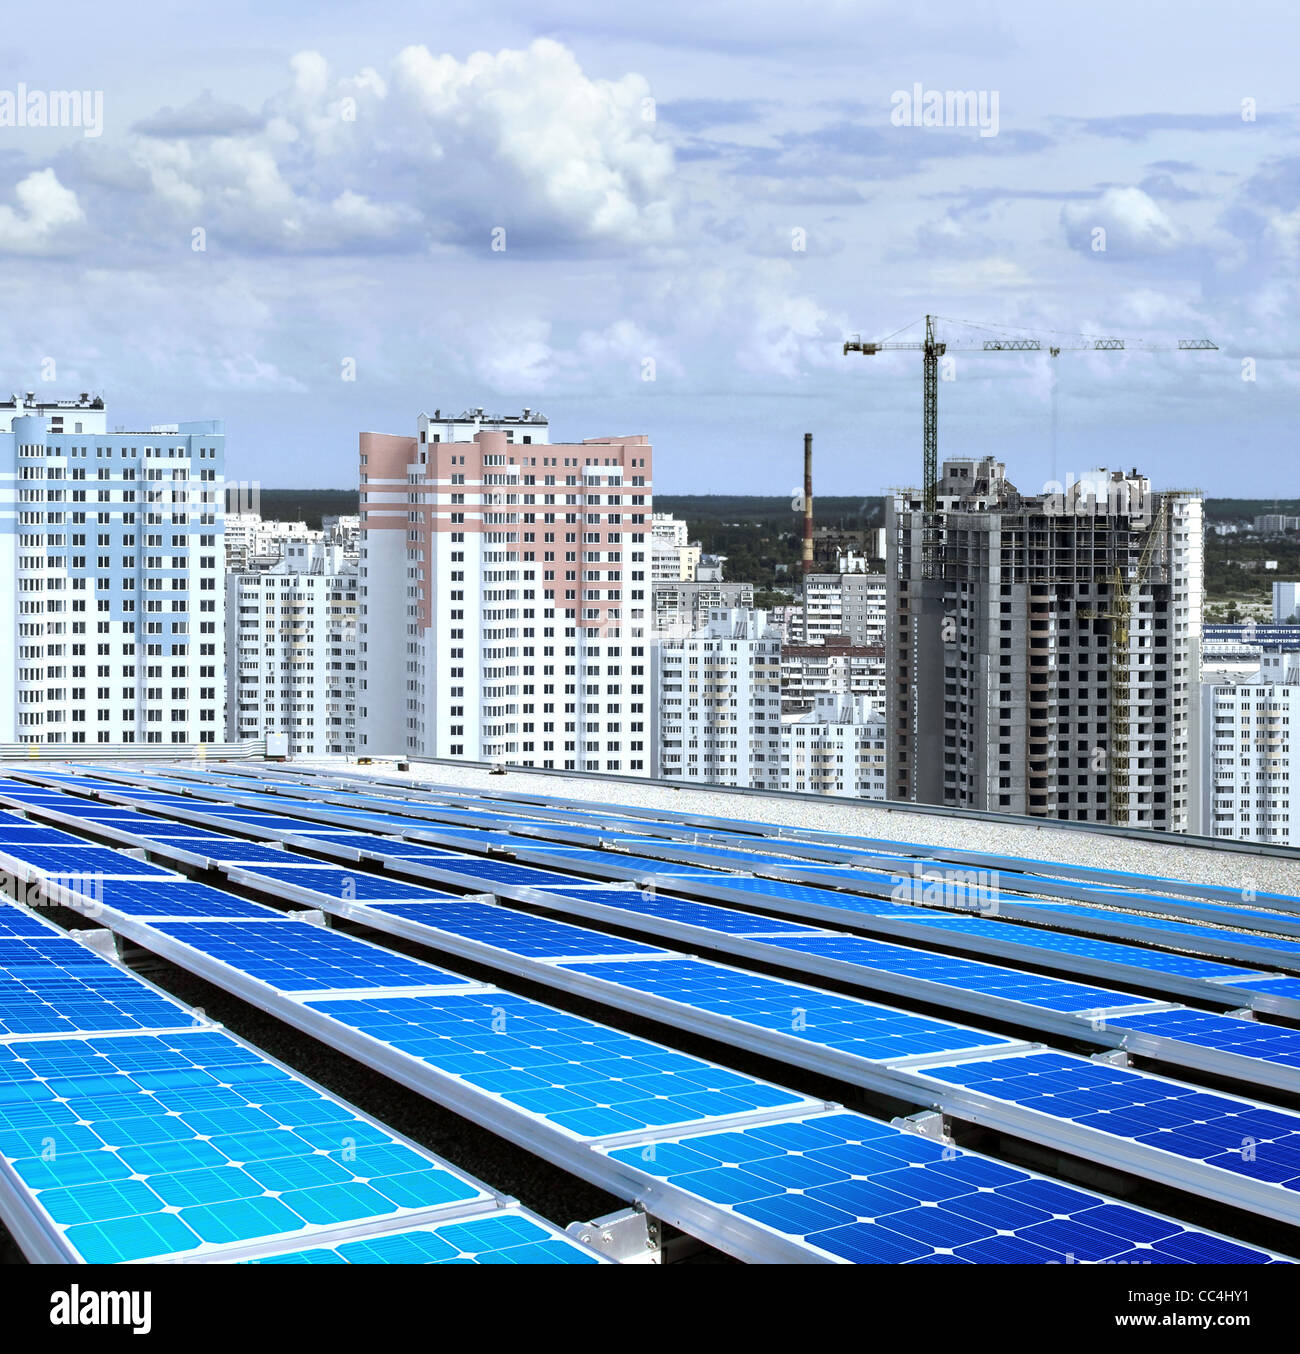 solarpanel on roof of building that is new microdistrict - Stock Image